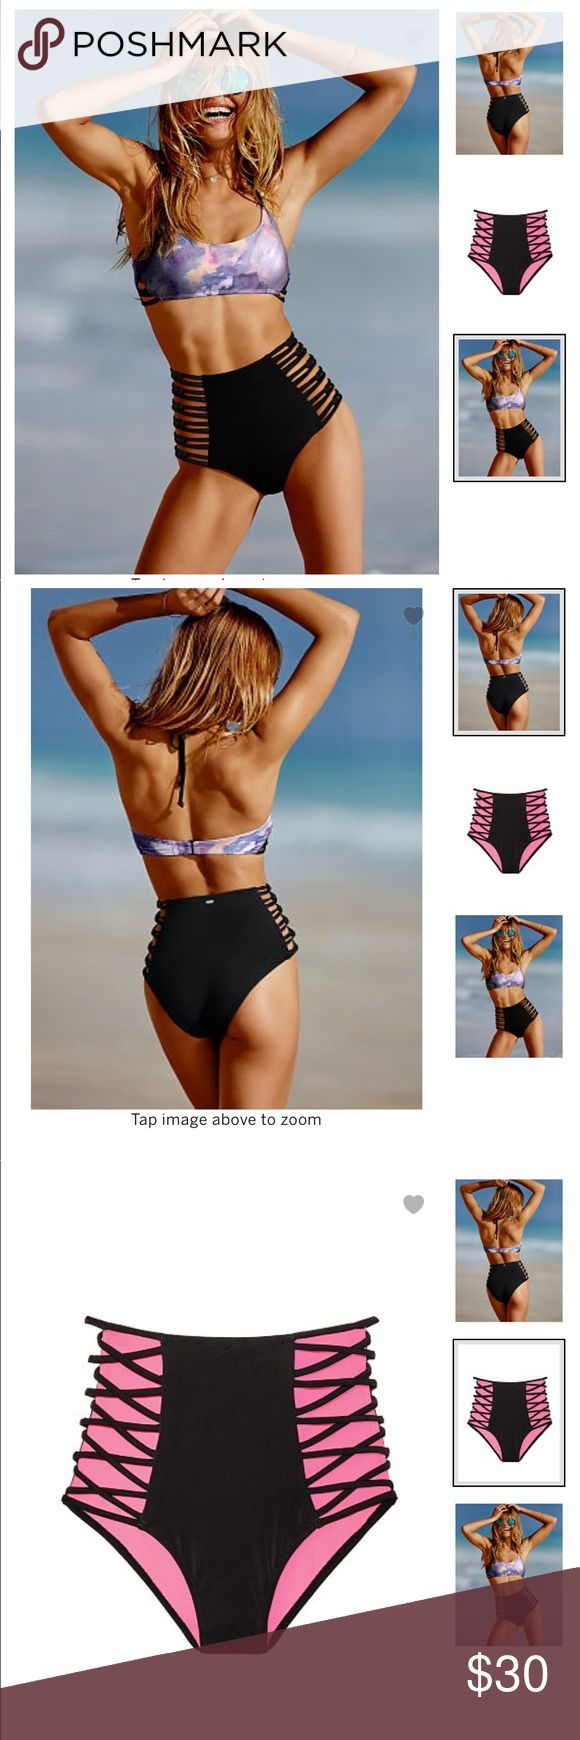 Victoria's Secret High Waist Strappy Bikini Bottom Rock the retro-vibe with open, crisscross sides and a high-waist. Mix & match all our cute suits—swimwear by Victoria's Secret PINK.  Moderate coverage High-rise Fully lined Imported nylon/spandex PINK Victoria's Secret Swim Bikinis